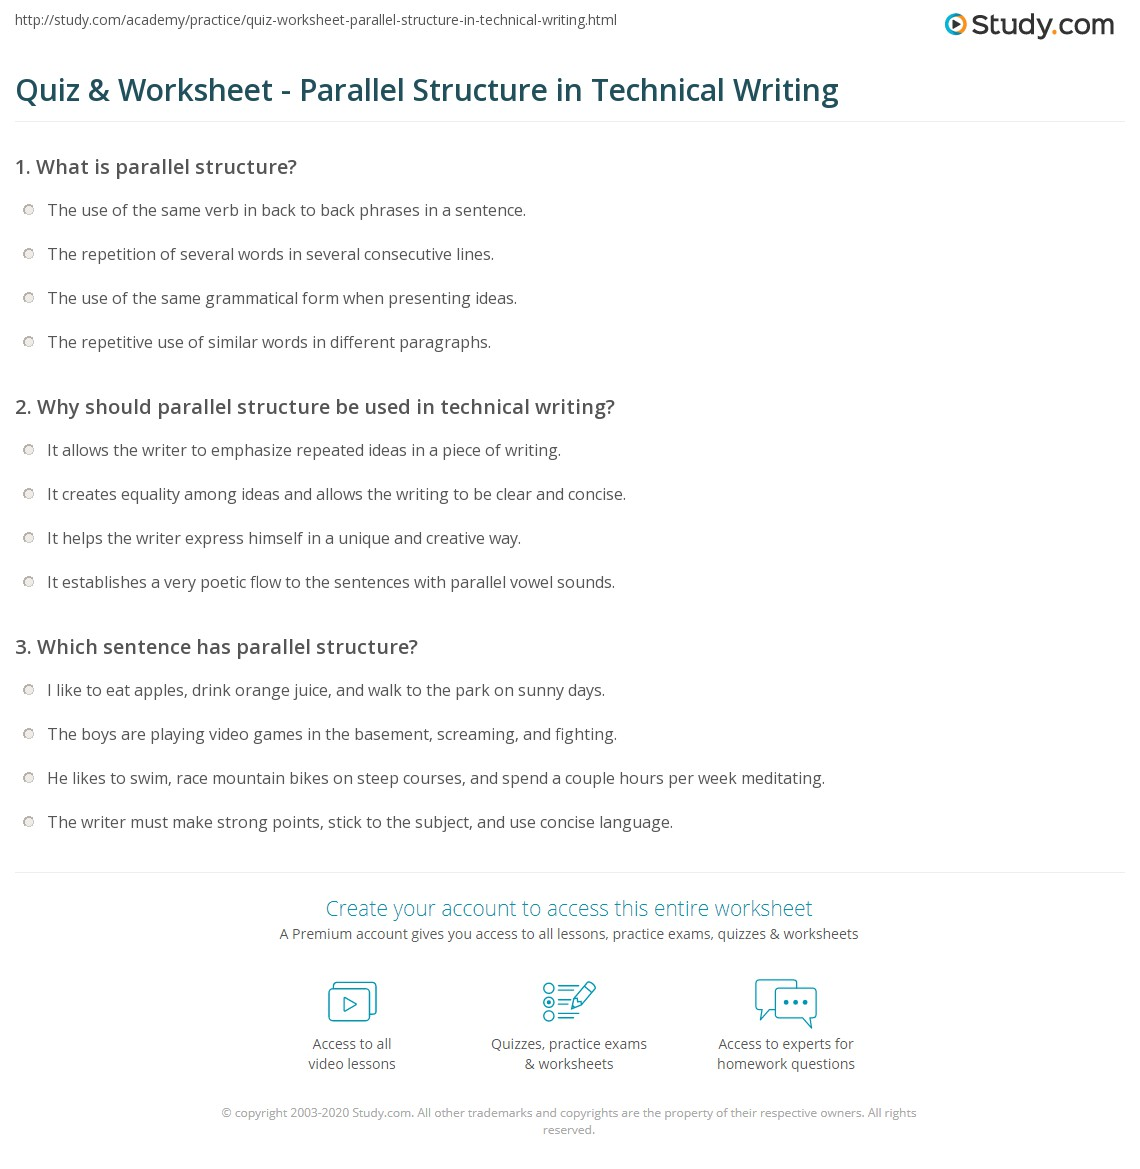 Quiz & Worksheet - Parallel Structure in Technical Writing | Study.com